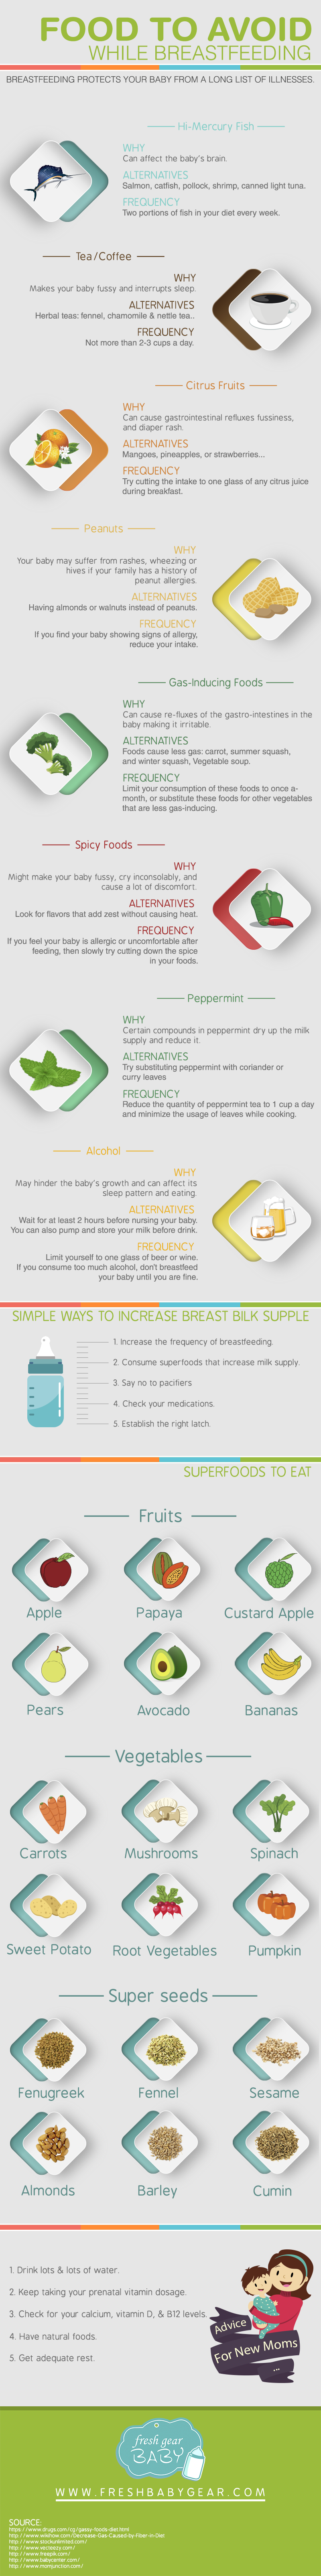 Are There Any Foods To Avoid While Breastfeeding?  View More…